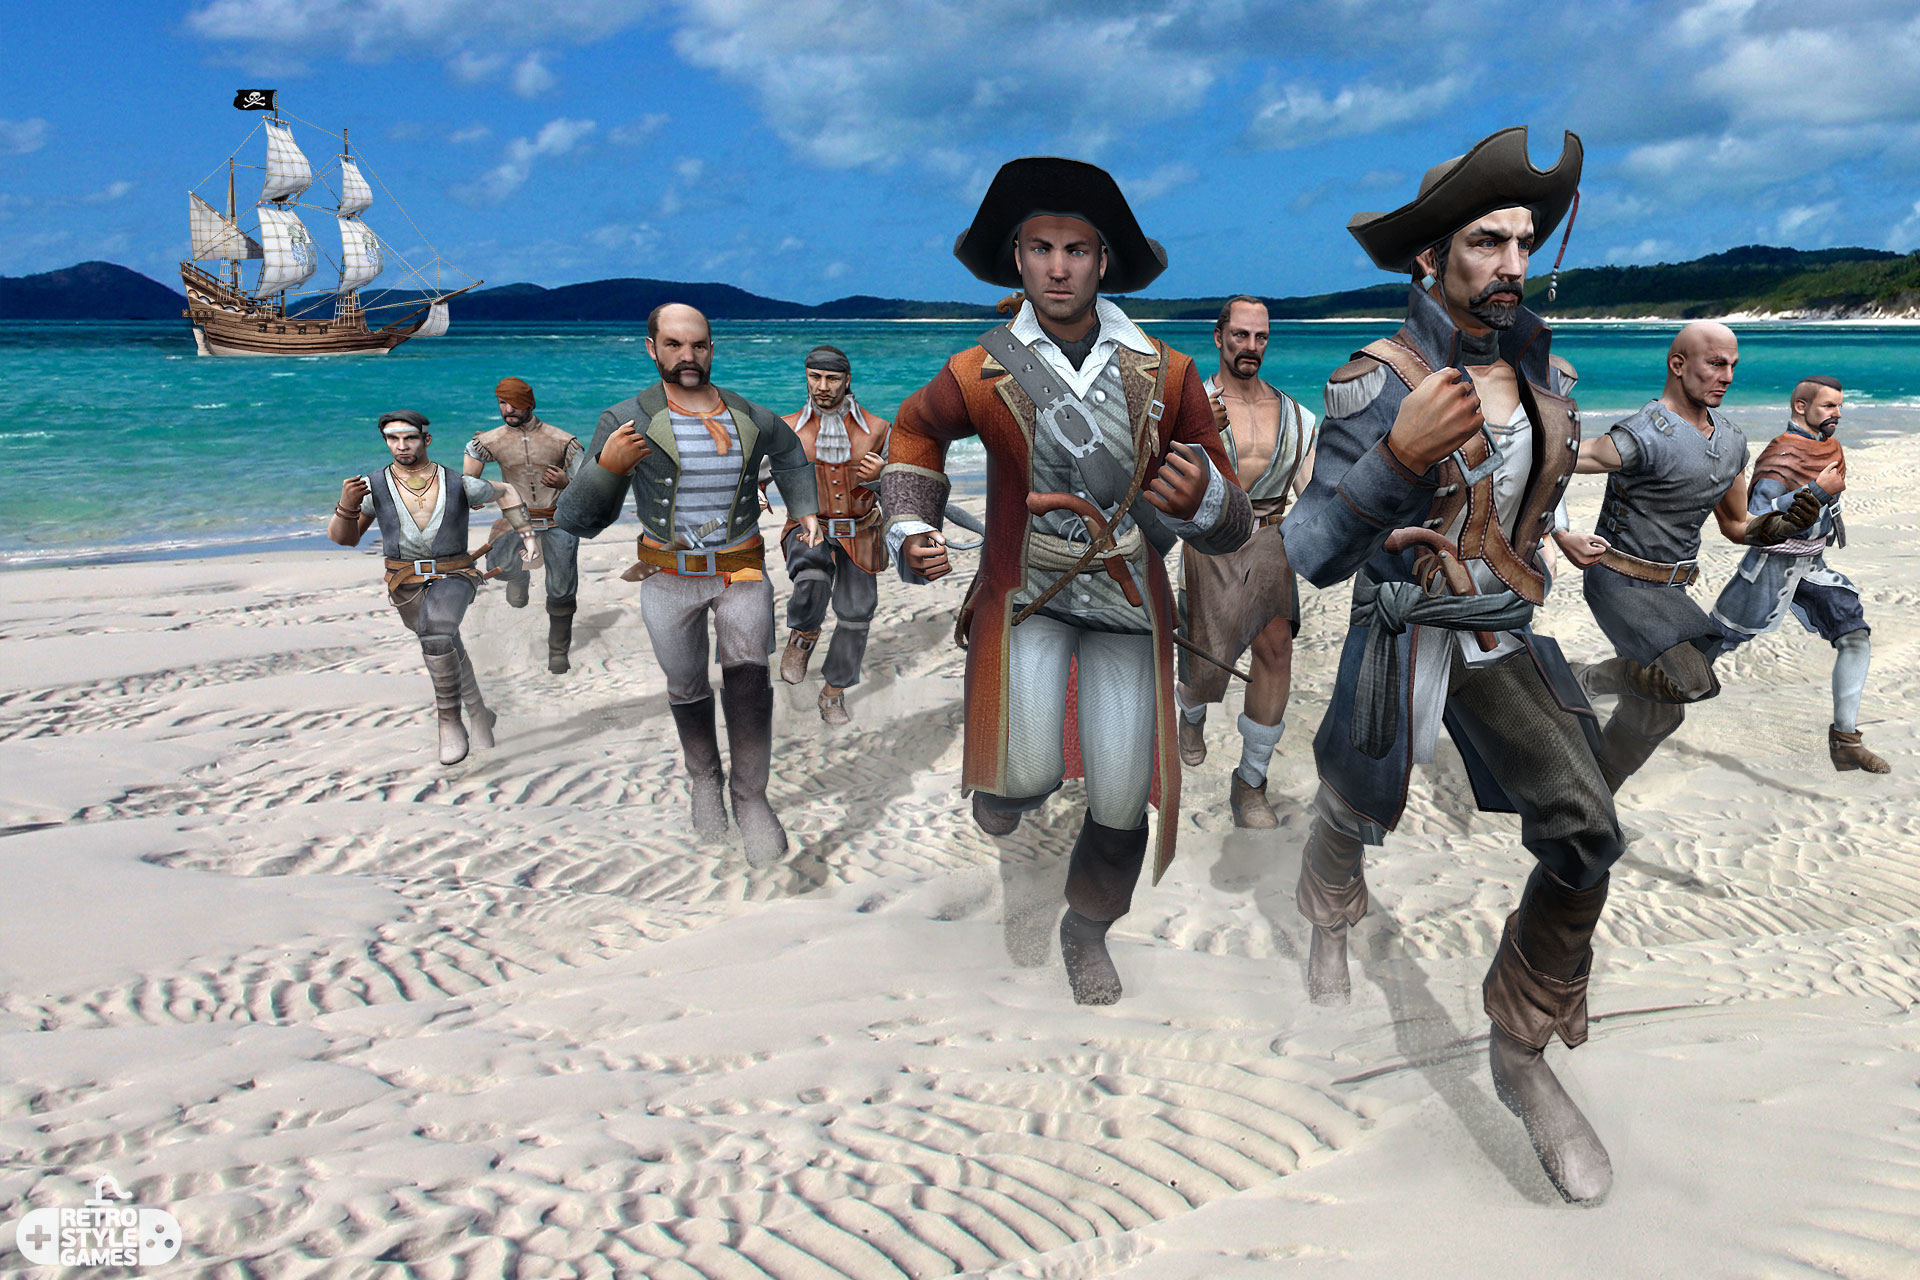 pirate characters first image